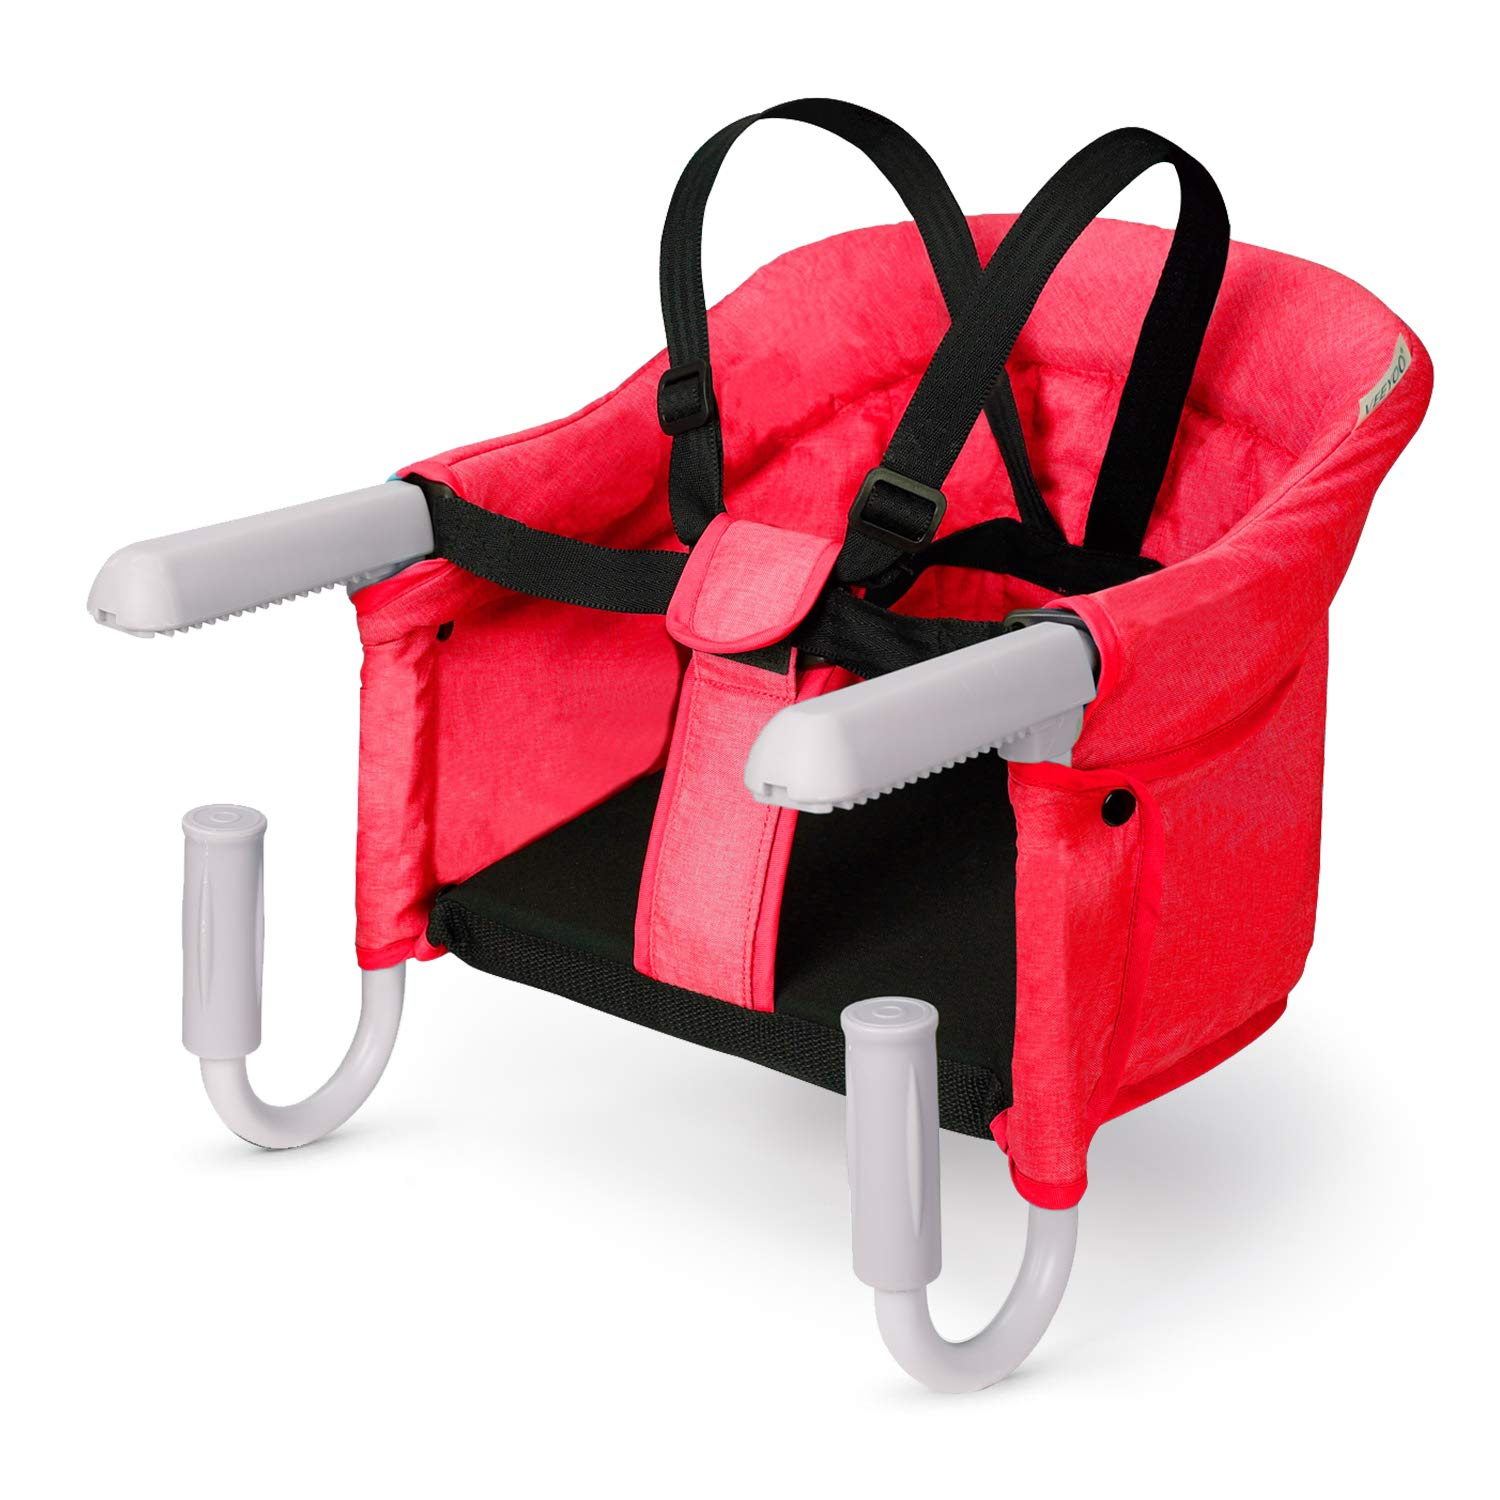 VEEYOO Hook On Chair - Compact Fold Clip On High Chair for Baby Toddler, Machine Washable Portable High Chair for Travel (Red)